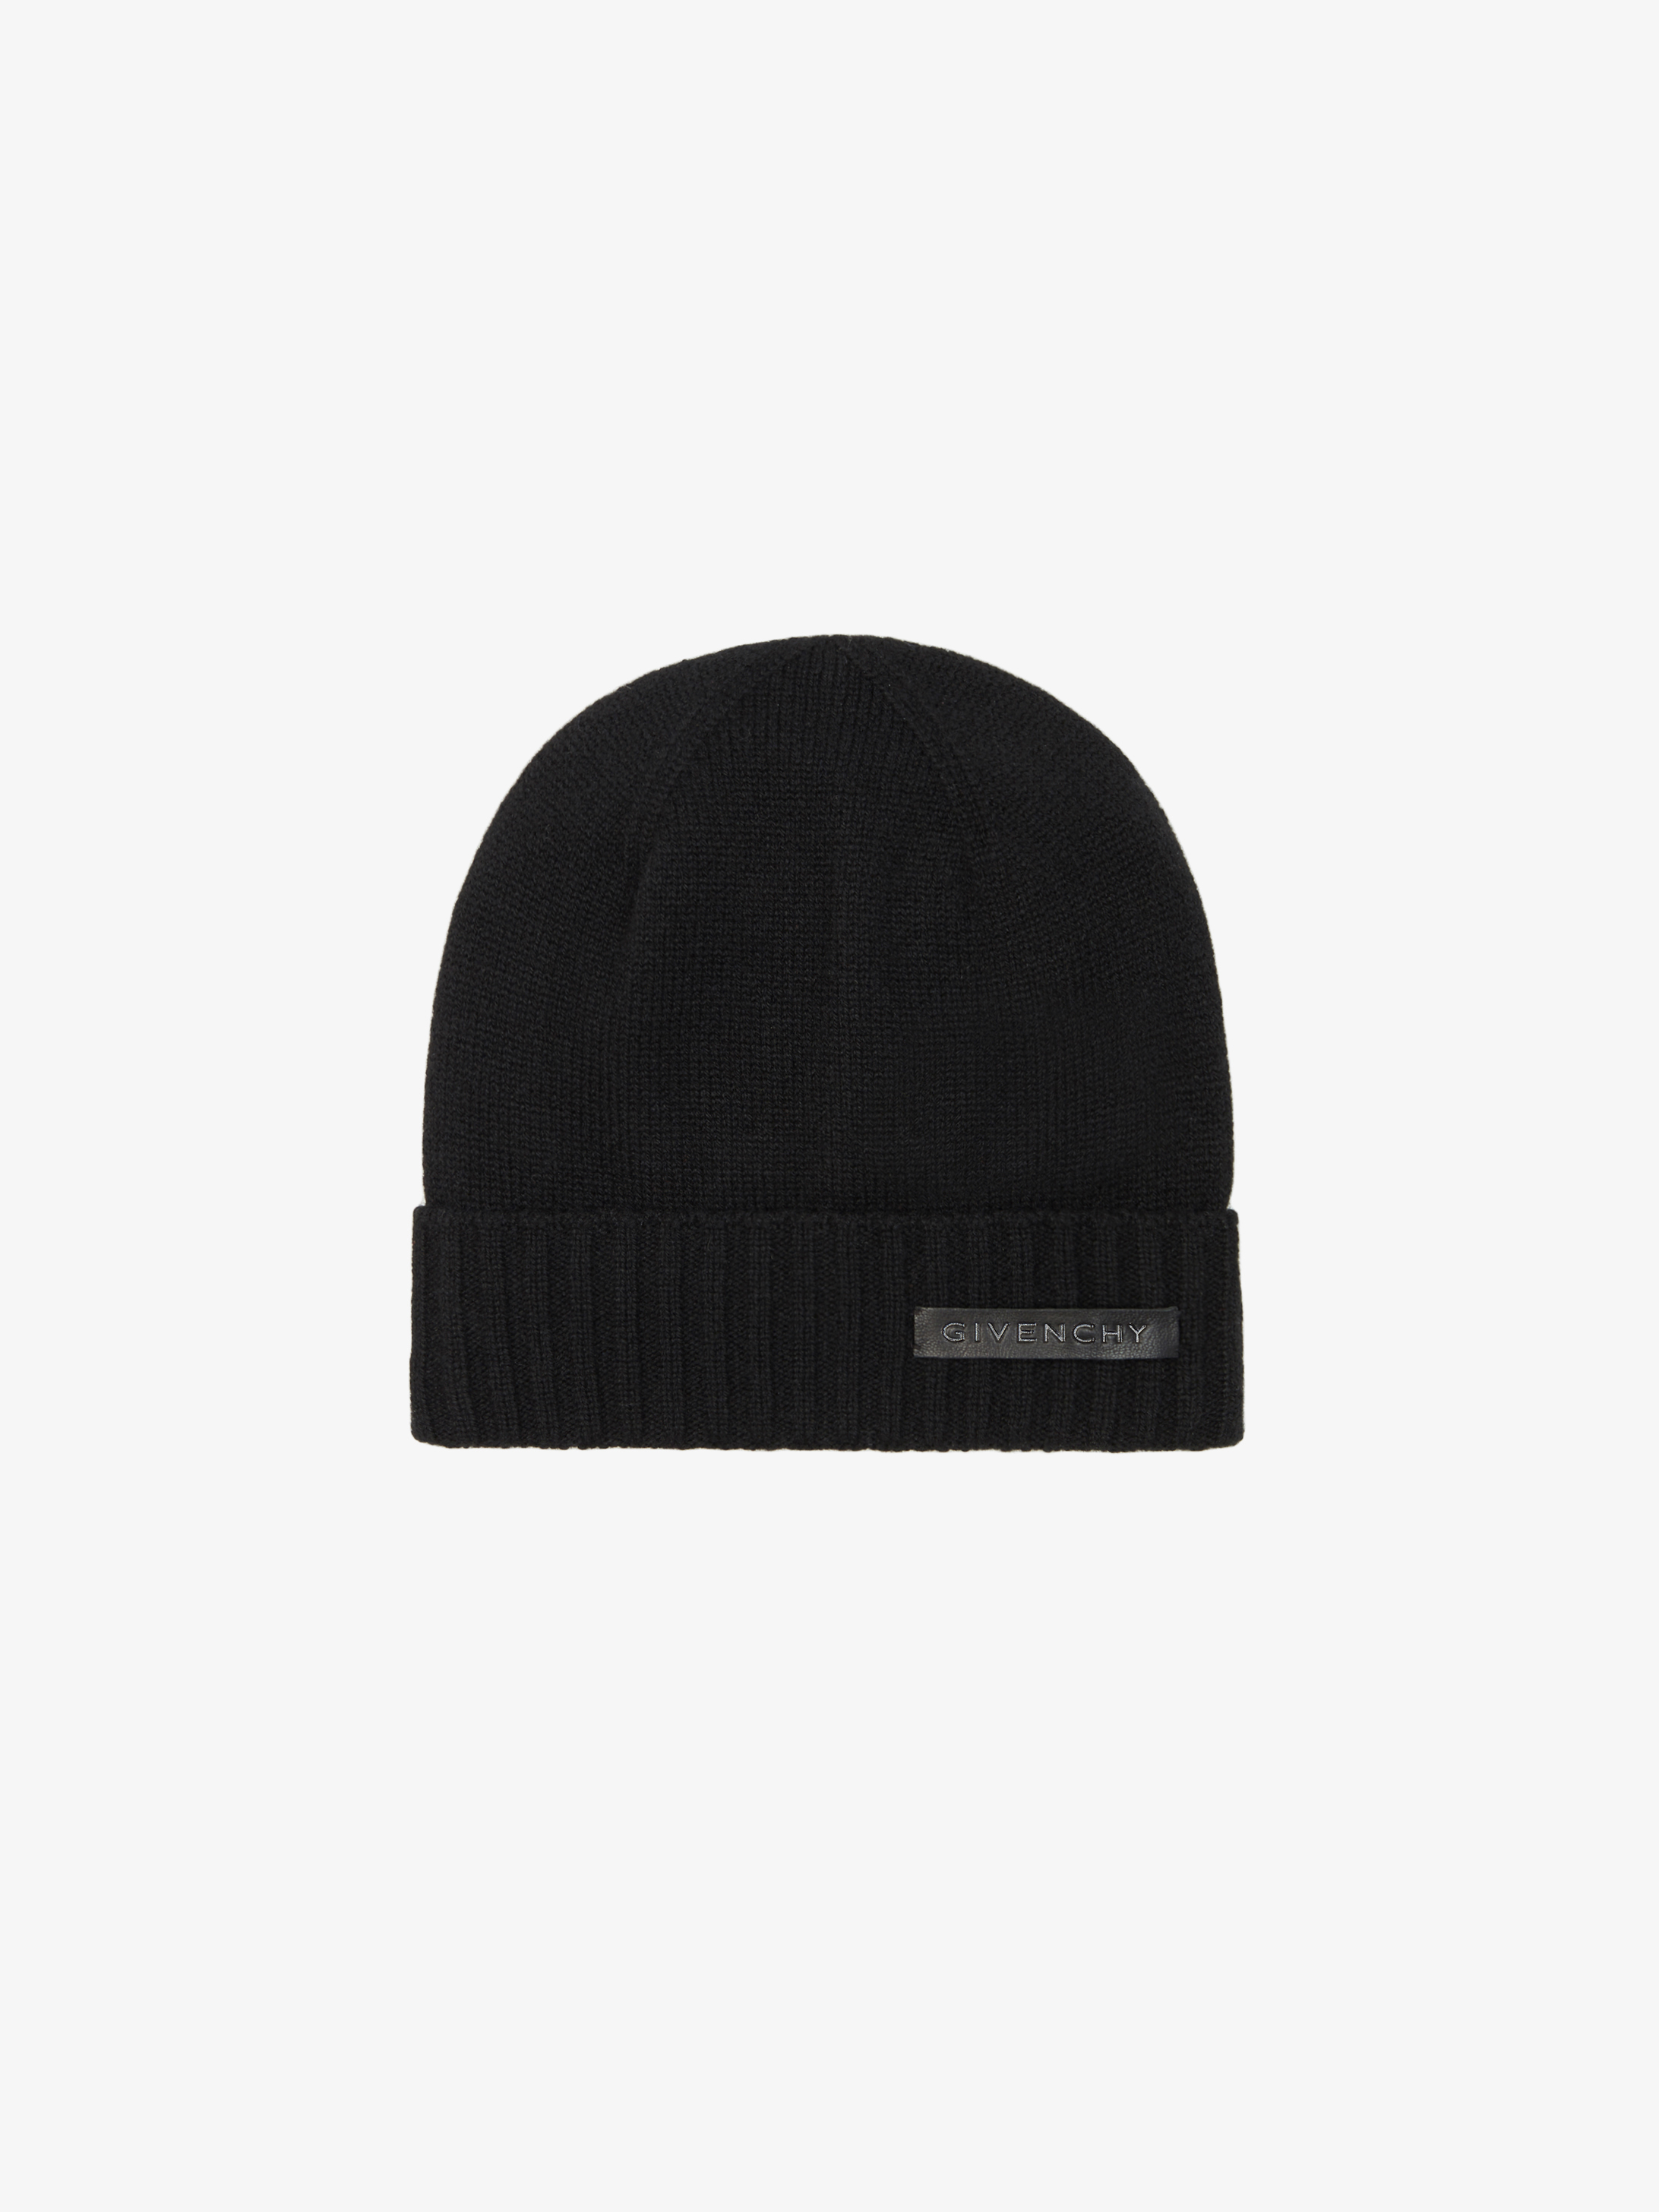 GIVENCHY cashemire beanie